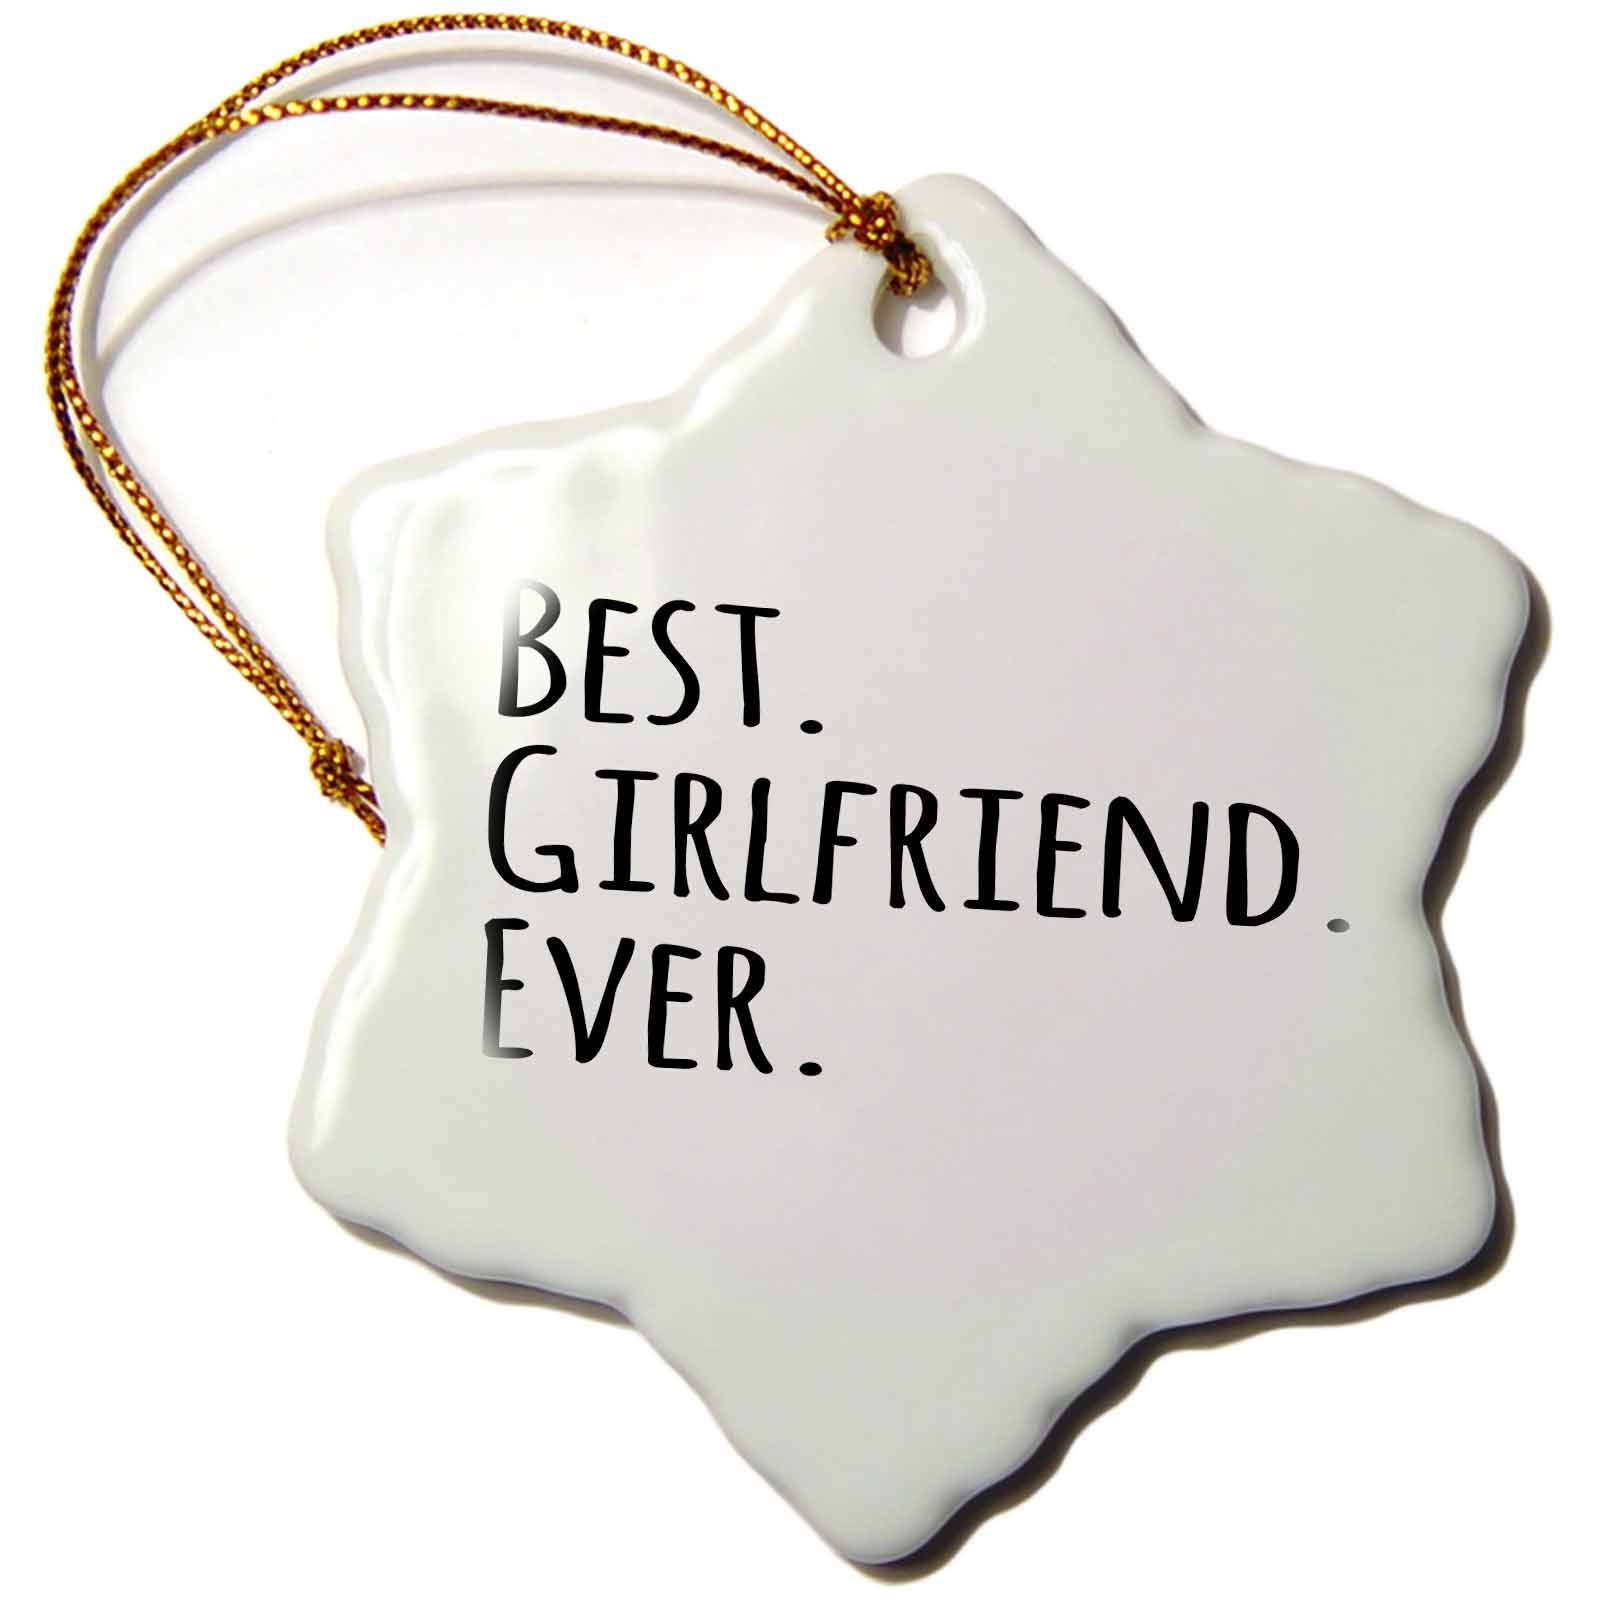 3dRose Best Girlfriend Ever - fun romantic love and dating gifts for her for anniversary or Valentines day, Snowflake Ornament, Porcelain, 3-inch